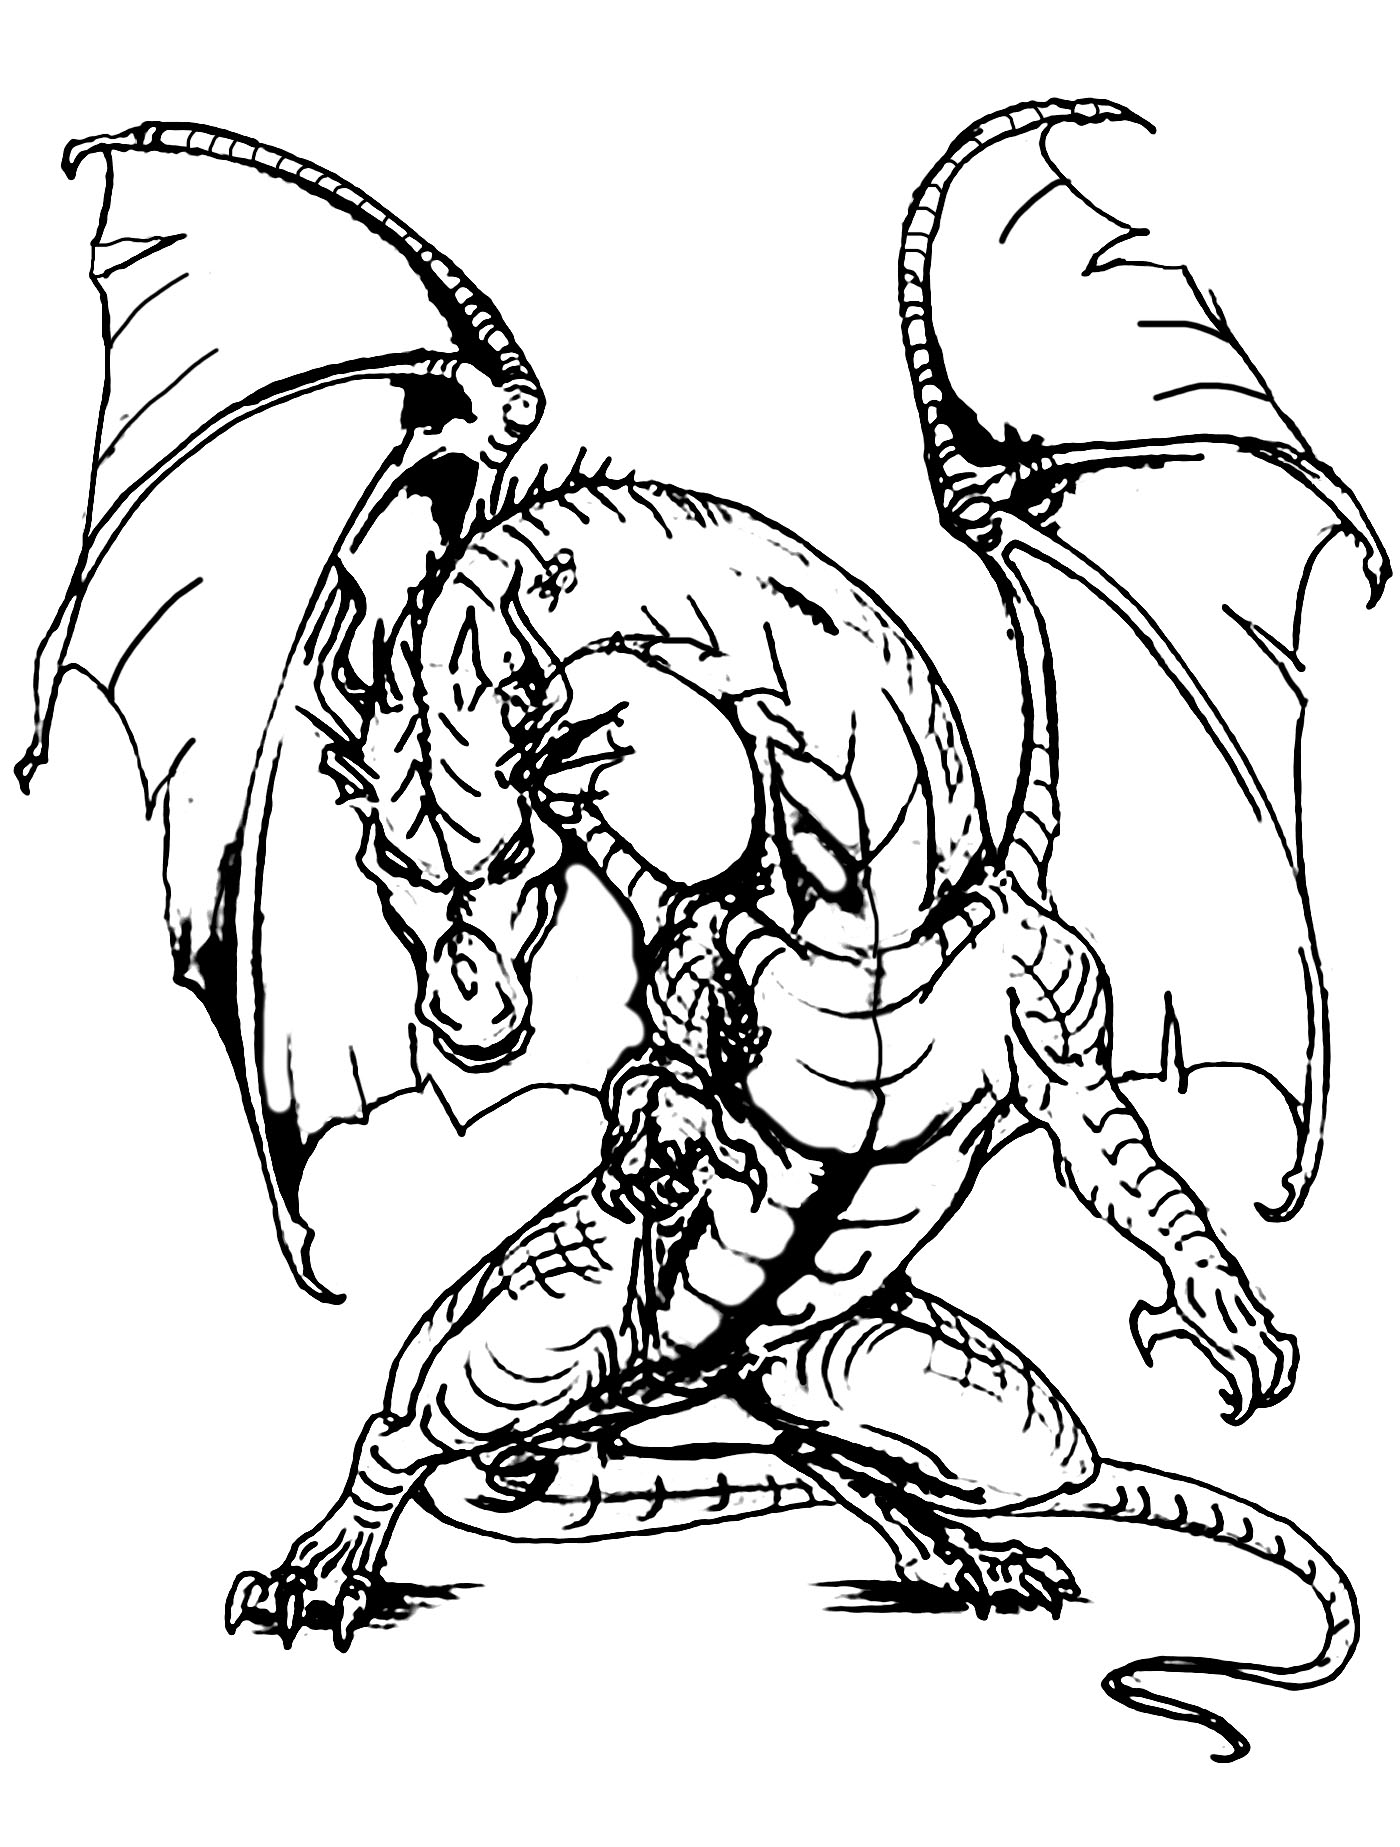 pictures of dragons to colour in coloring pages dragon coloring pages free and printable dragons of to colour pictures in